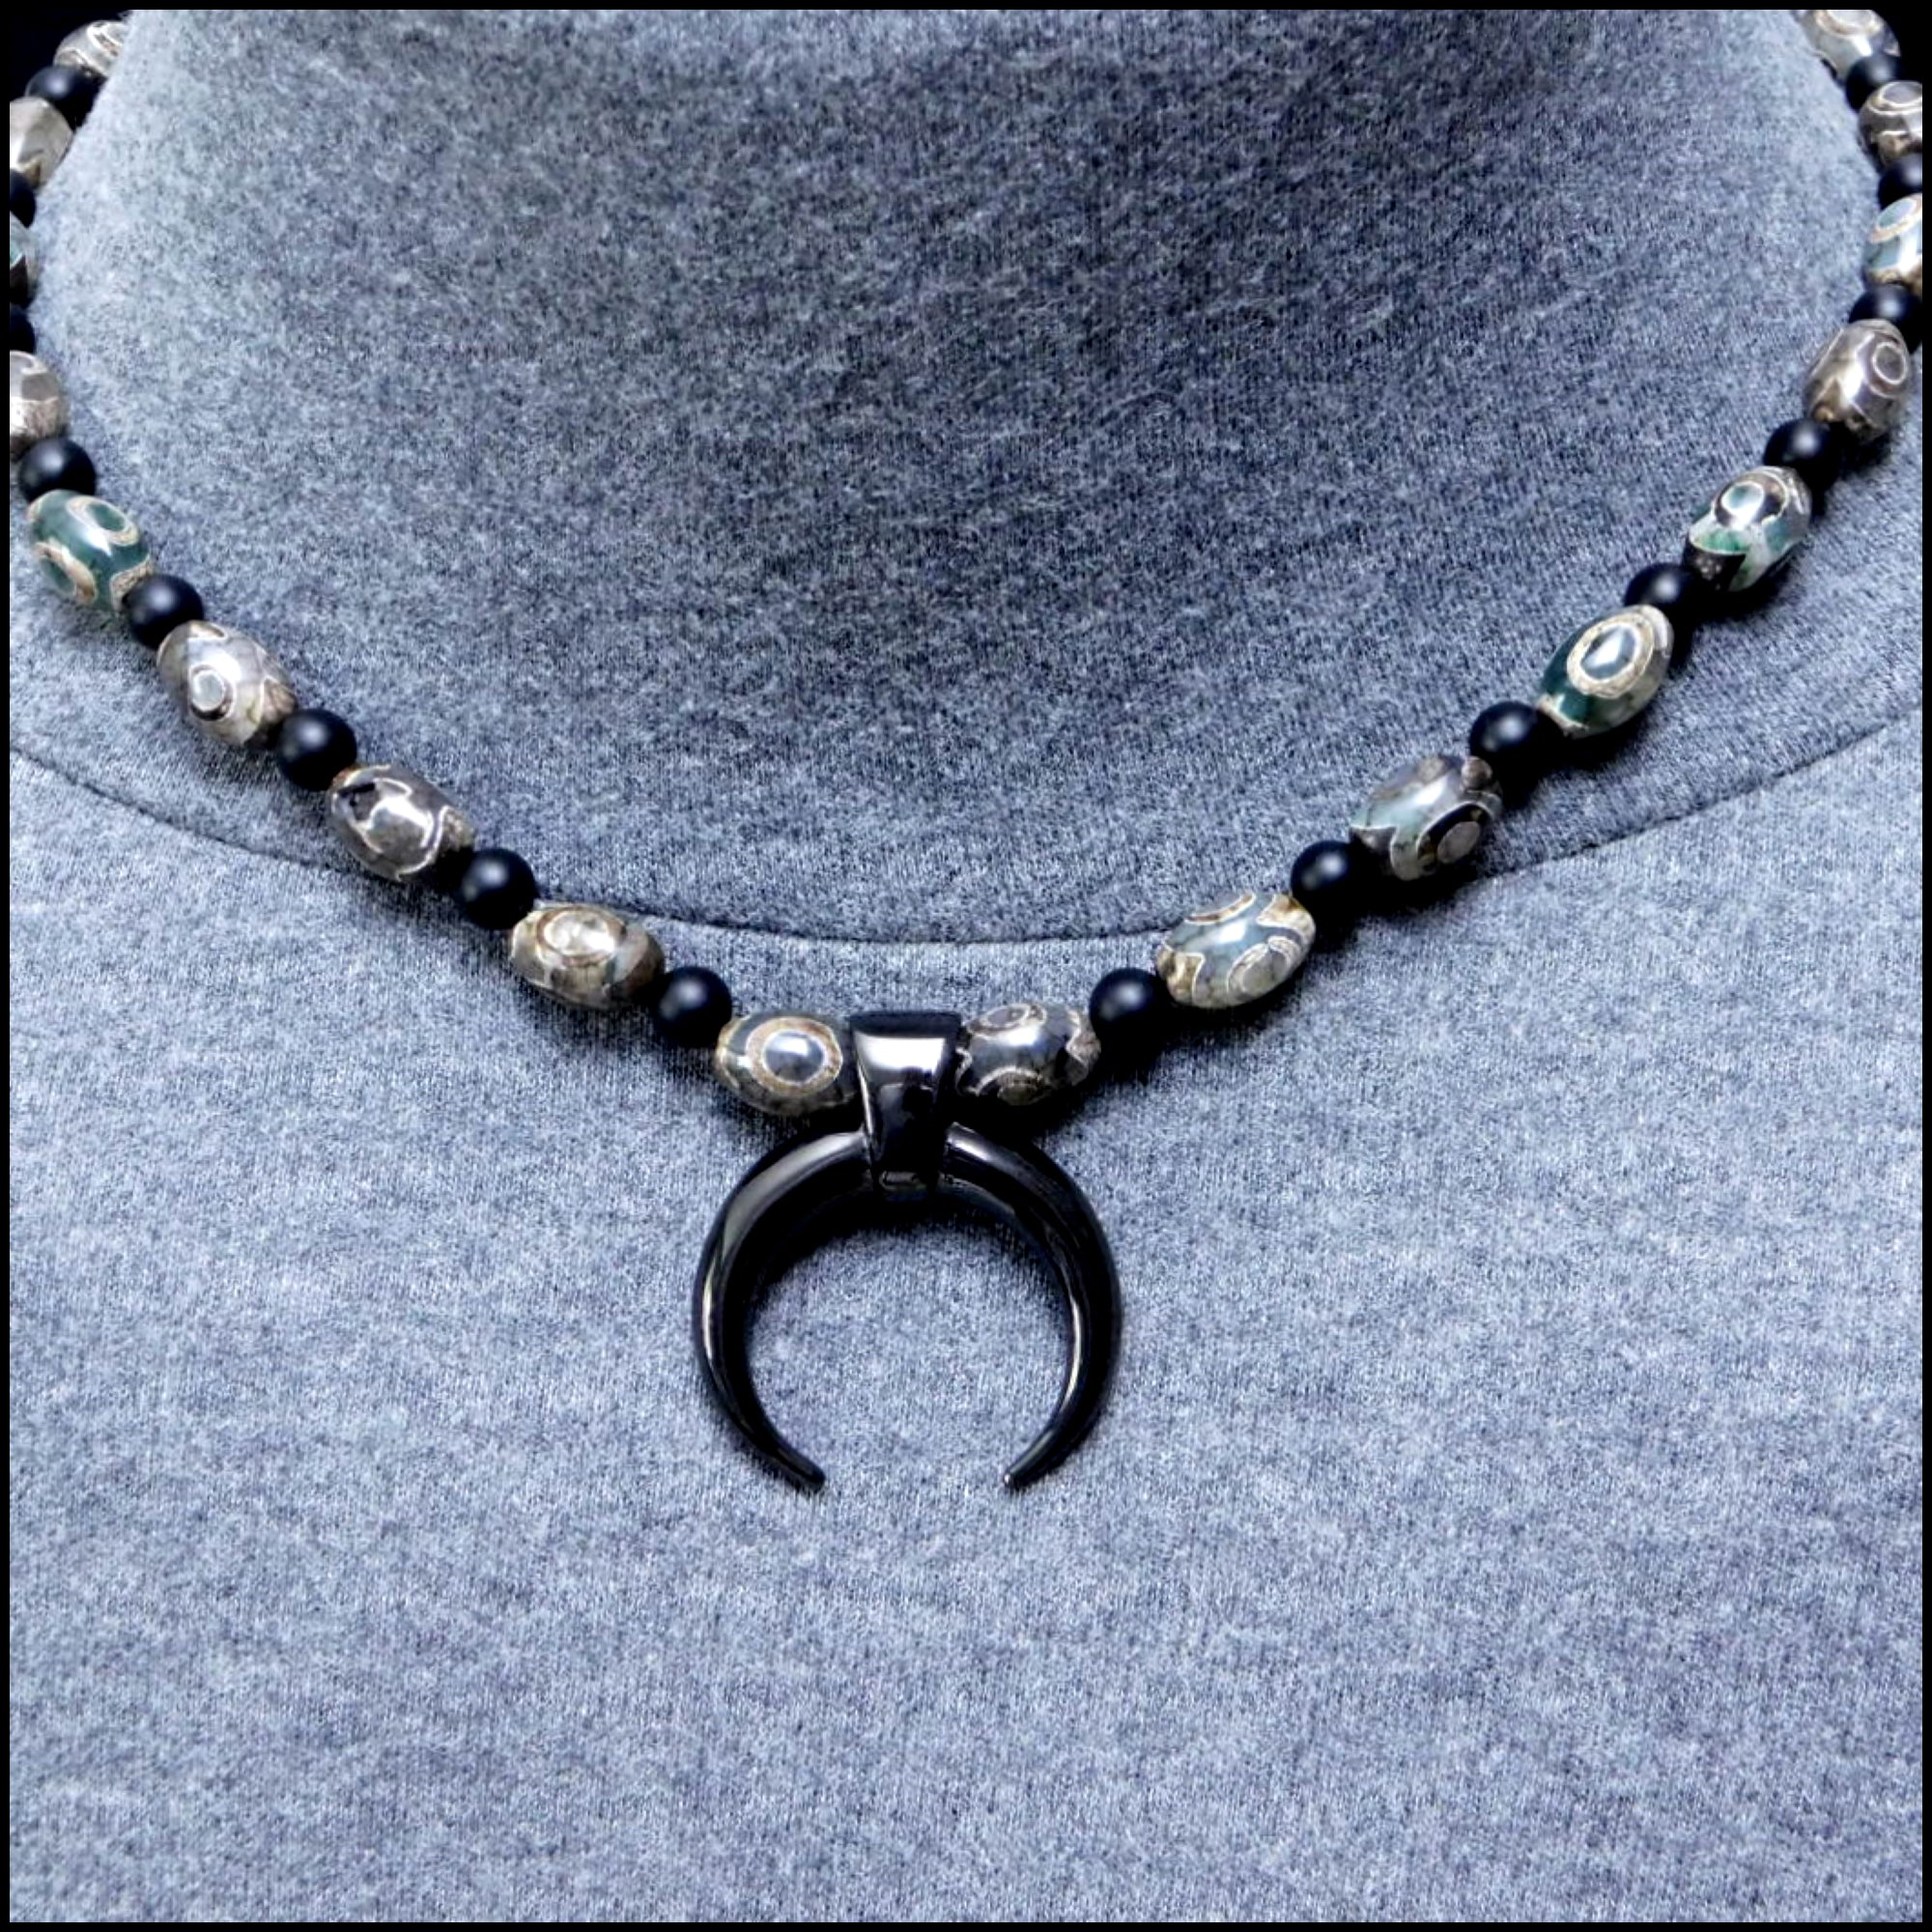 Black Warlock Warrior Necklace with Genuine Triple Eye Agate and Matte Black Onyx Beads